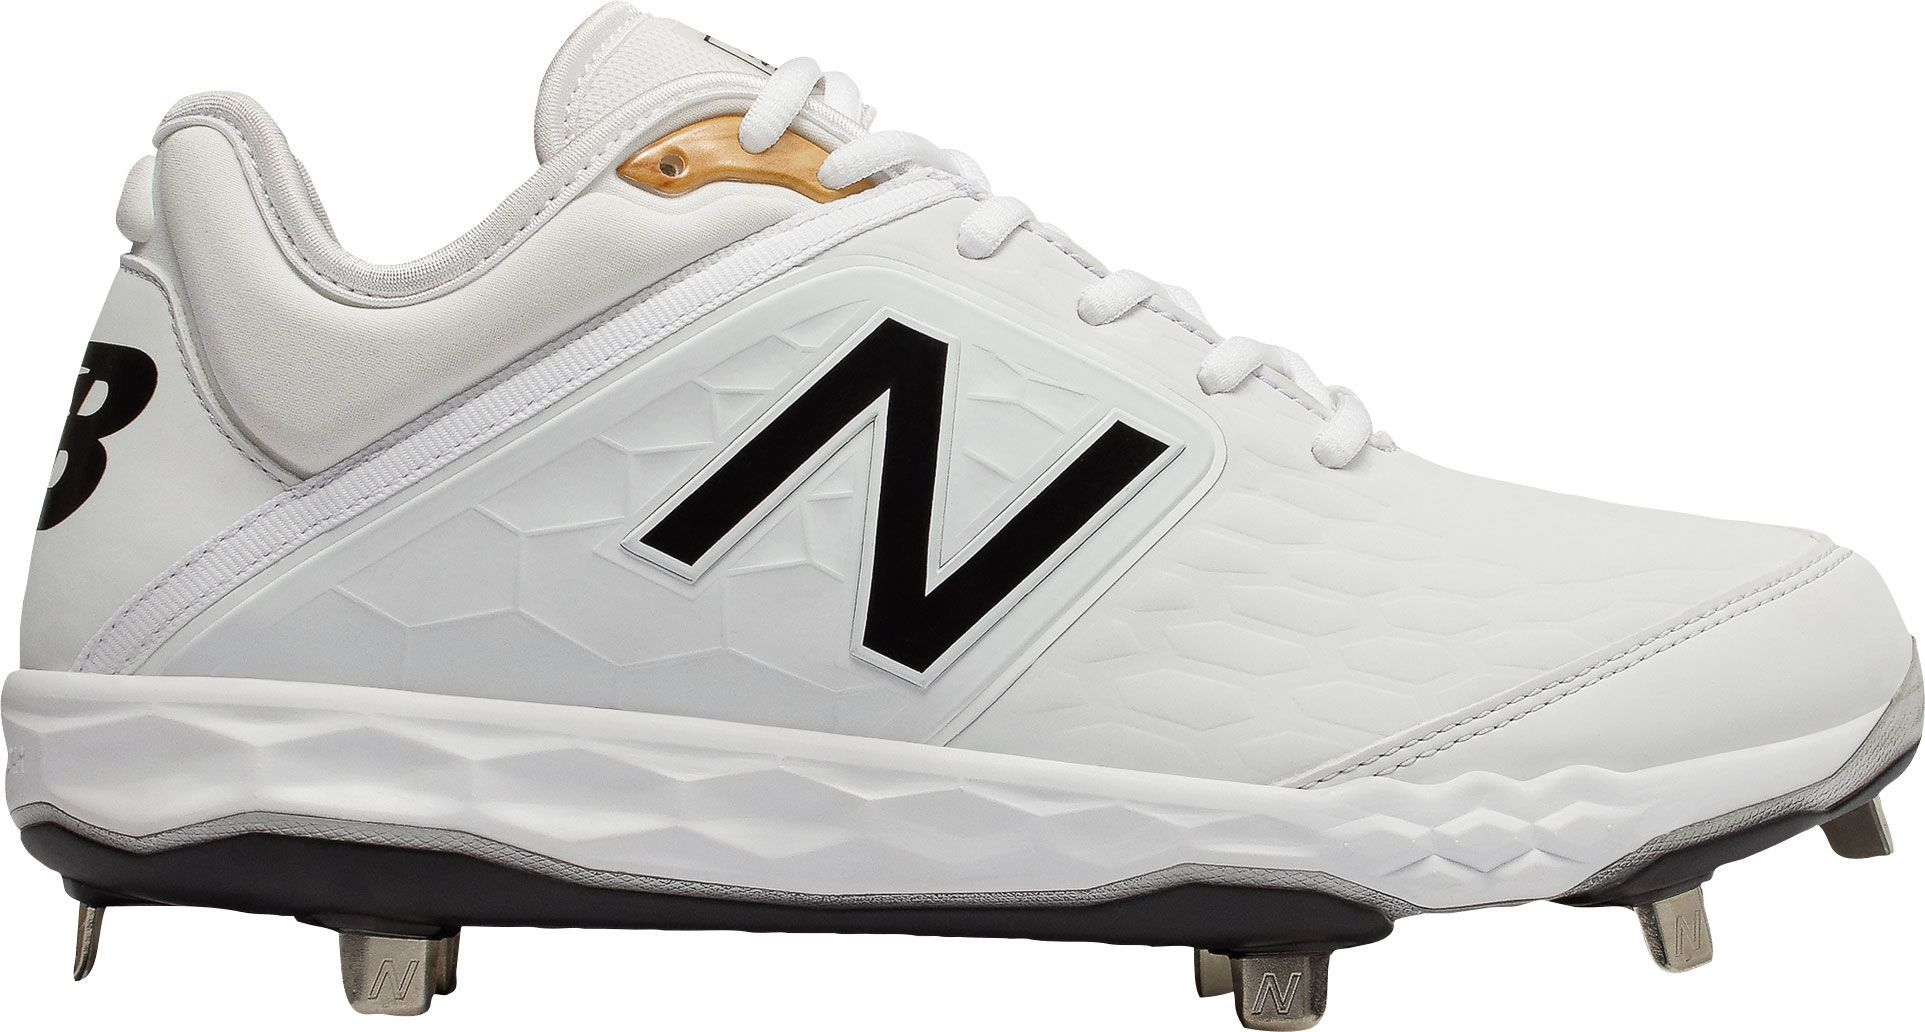 cef4f75f6d094 New Balance Men's 3000 V4 Metal Baseball Cleats, Size: 7.0, Red in ...